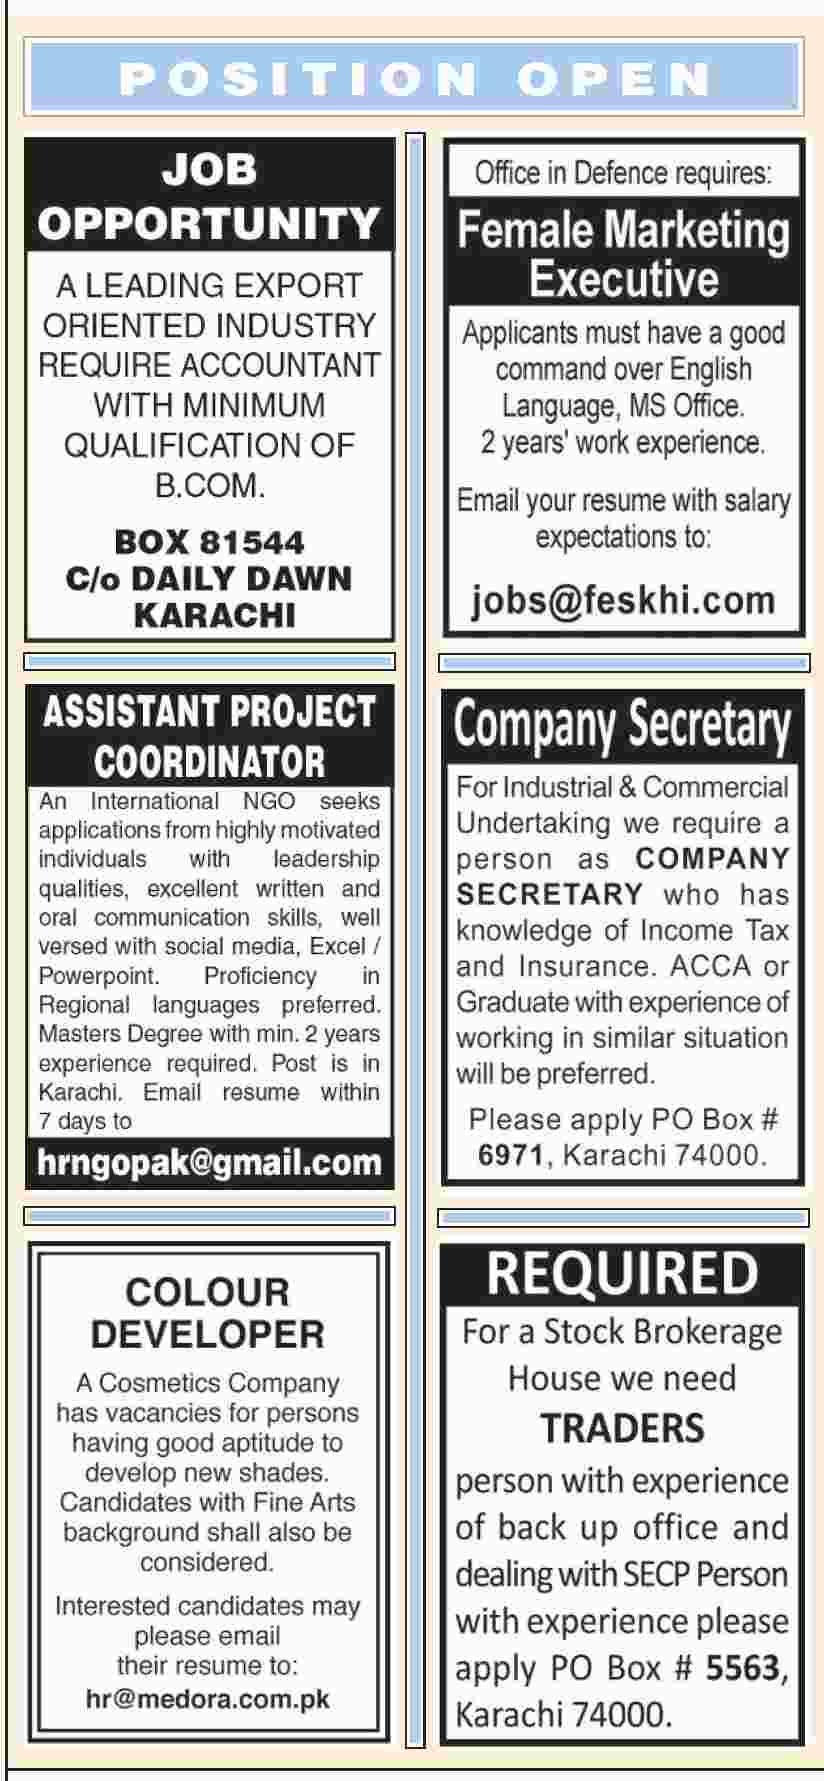 Jobs - A LEADING EXPORT ORIENTED INDUSTRY REQUIRE ACCOUNTANT ...